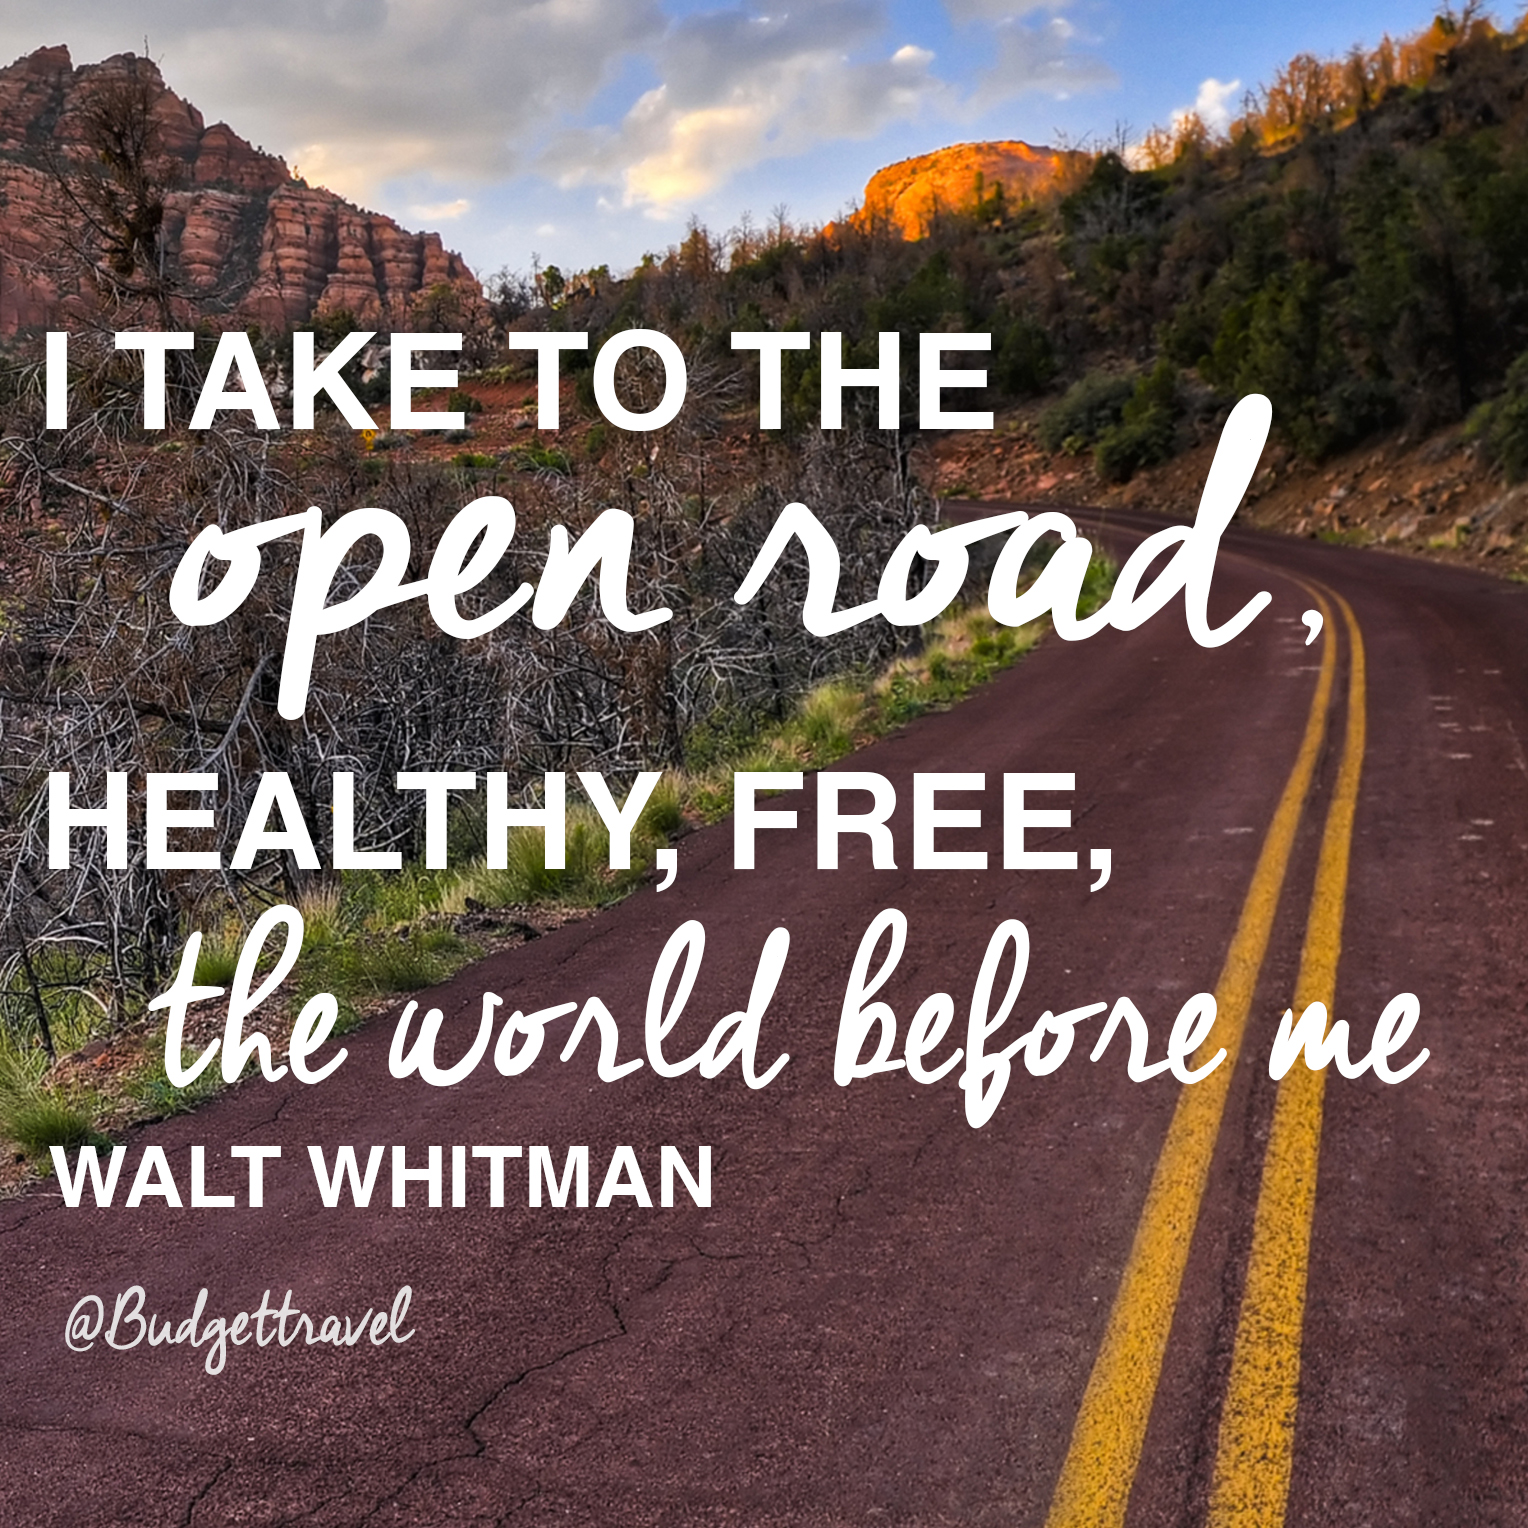 i-take-to-the-open-road-travel-quote-472015-1982_original